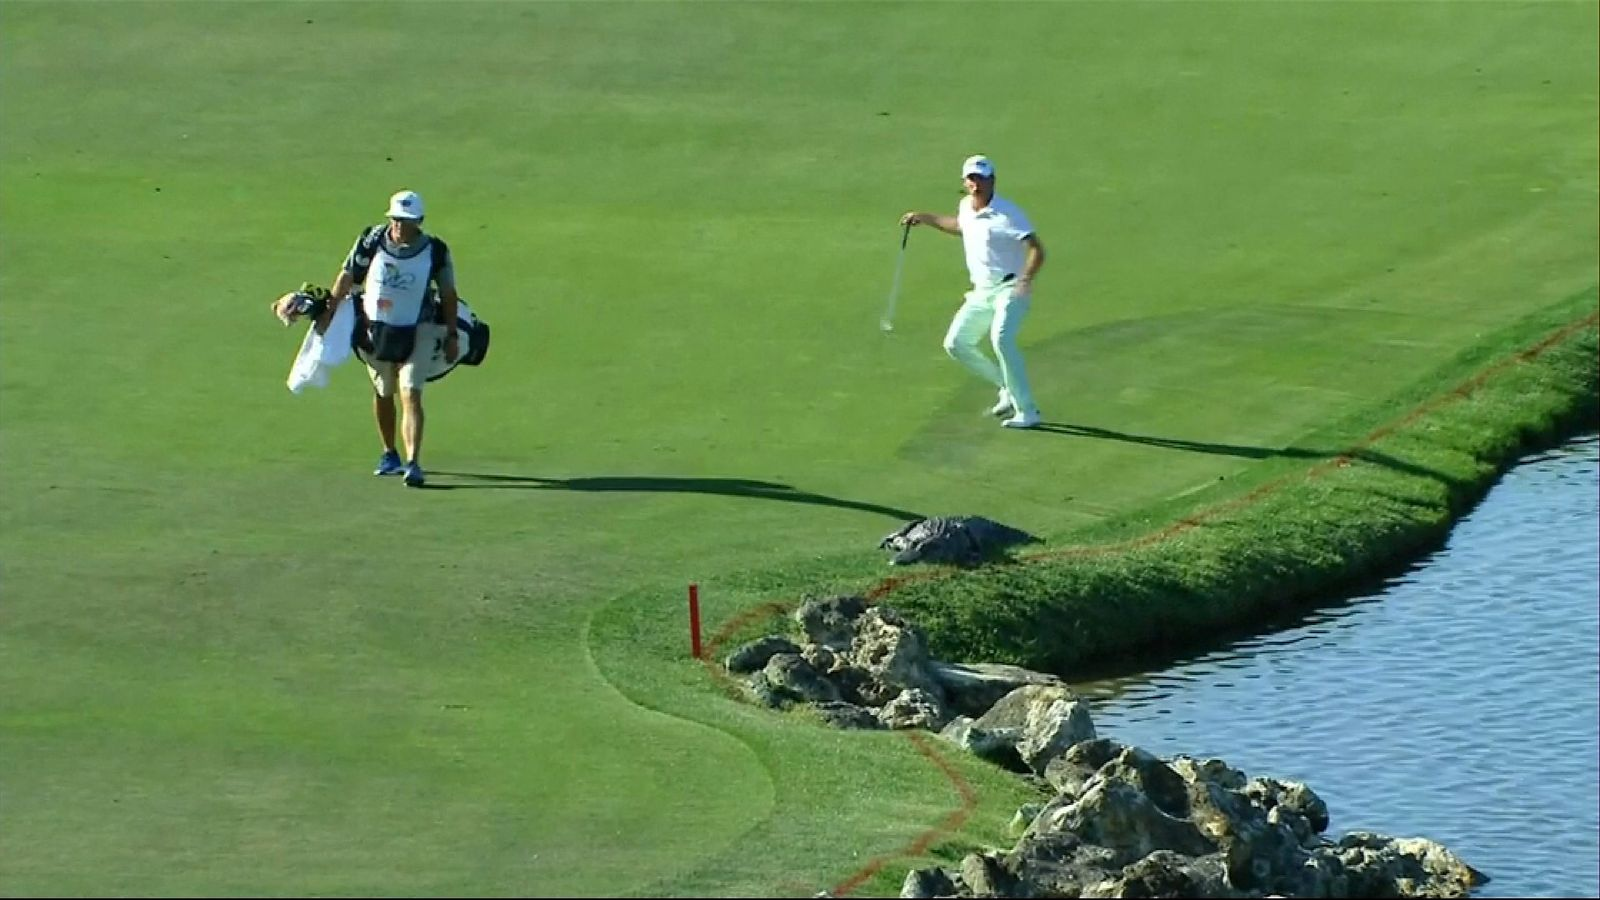 Smylie Kaufman and his caddie got a fright as they walked along the 6th fairway in Orlando